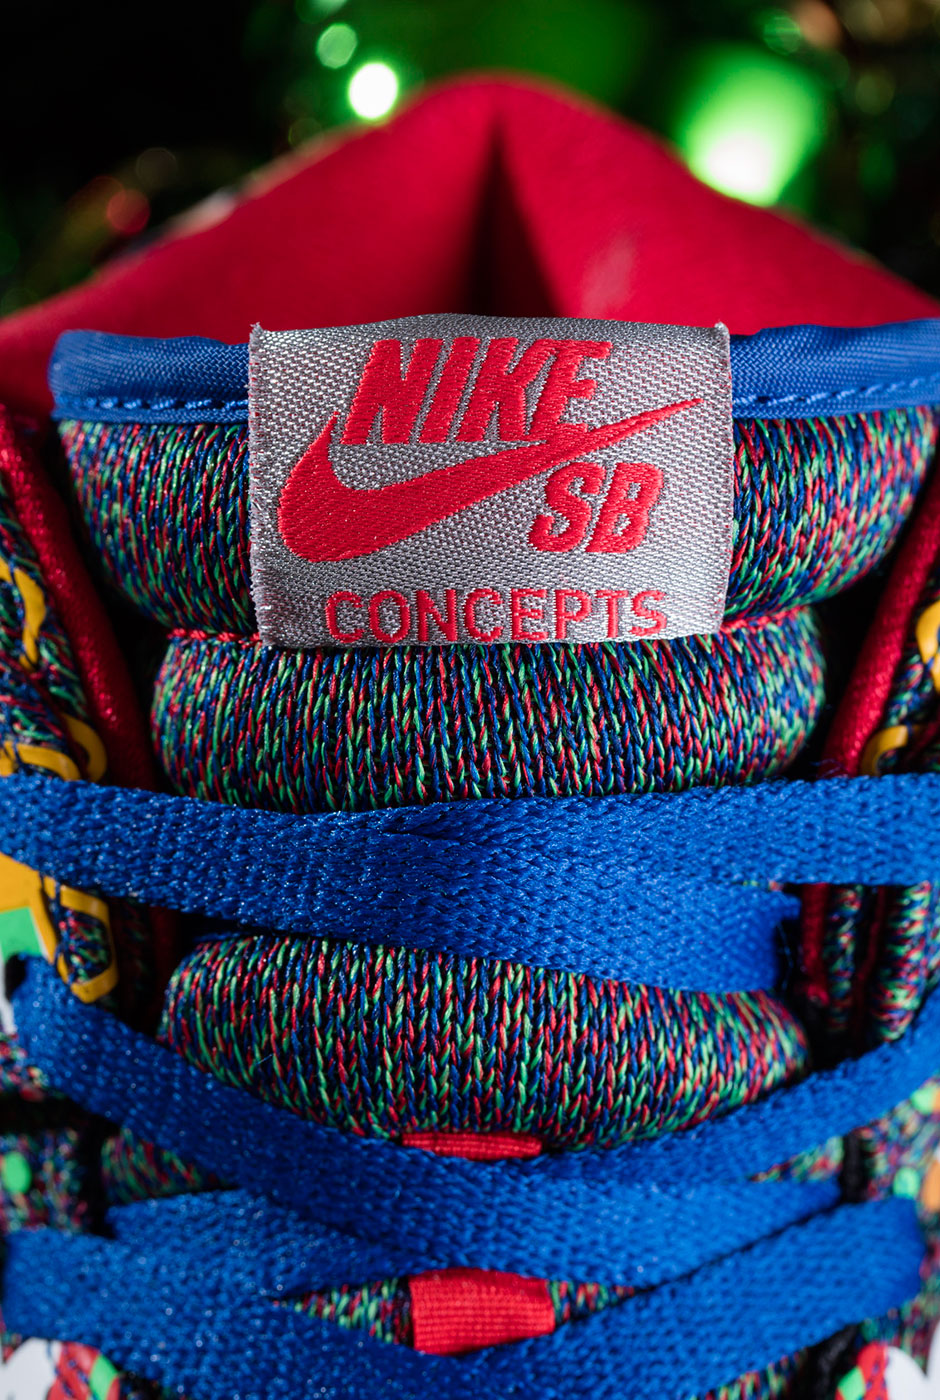 Wanna see Nike's Ugly Christmas Sweater SNEAKER?  Sure ya do..